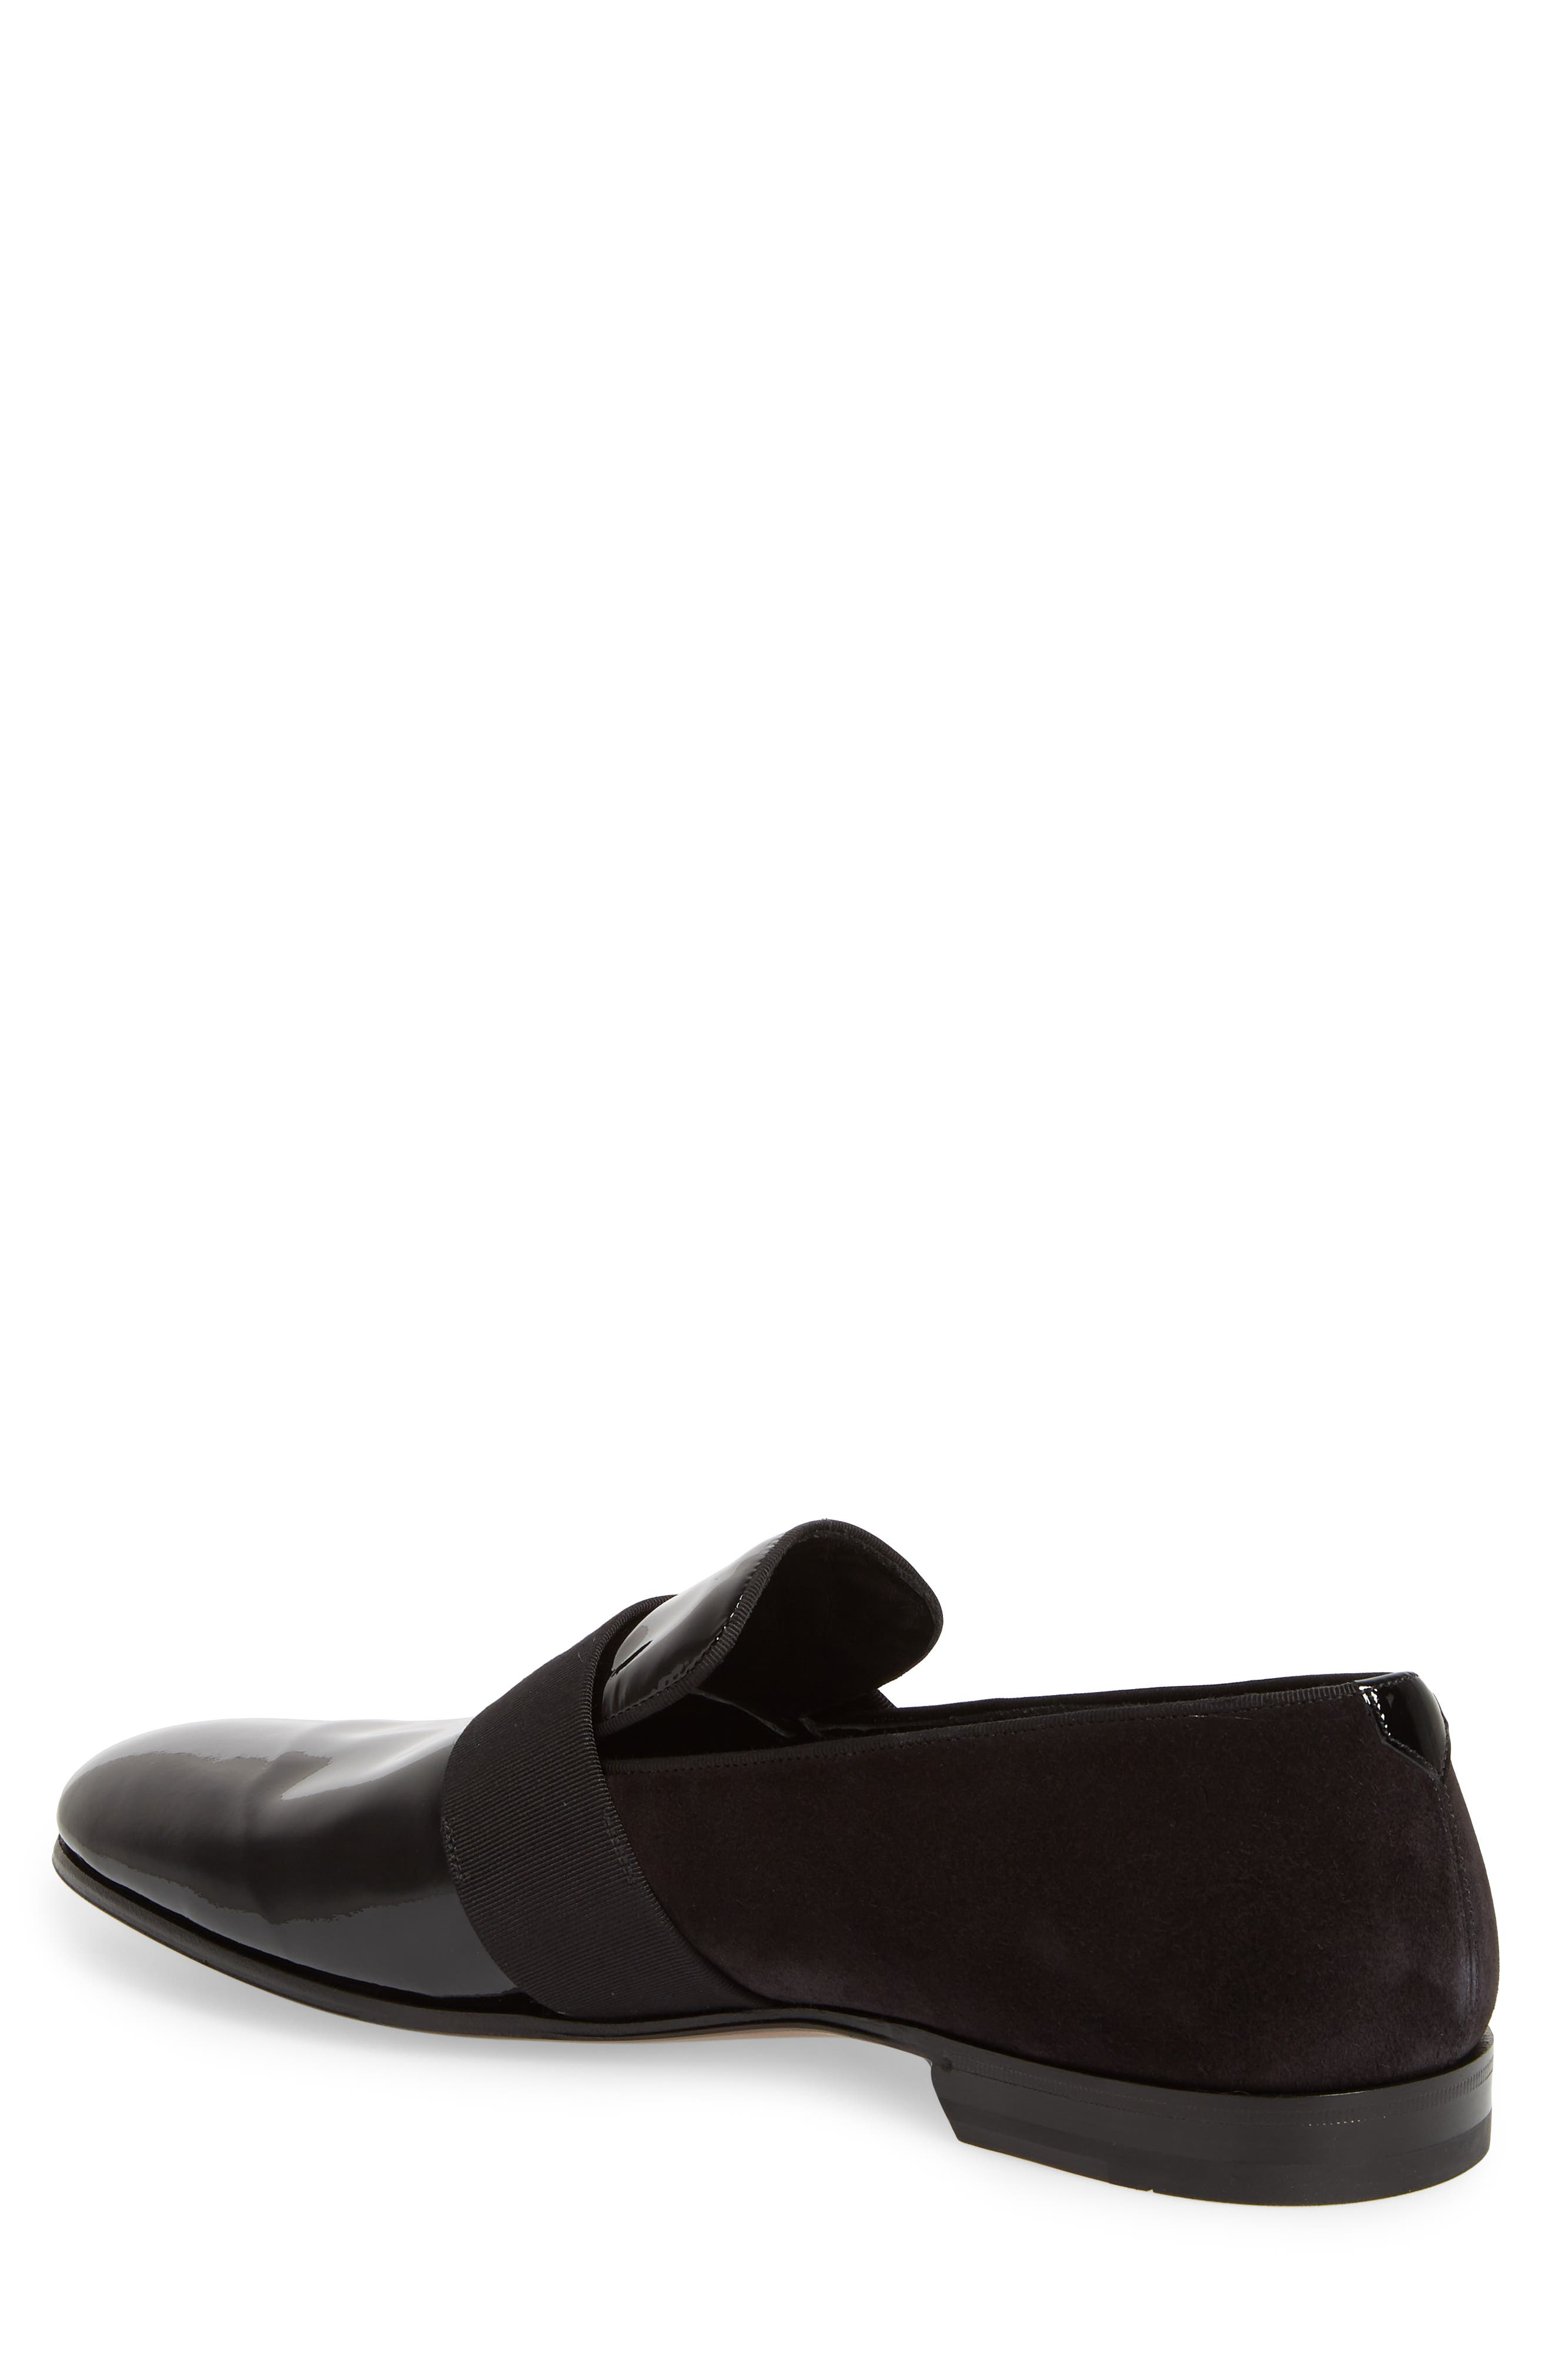 SALVATORE FERRAGAMO, Bryden Banded Loafer, Alternate thumbnail 2, color, NERO